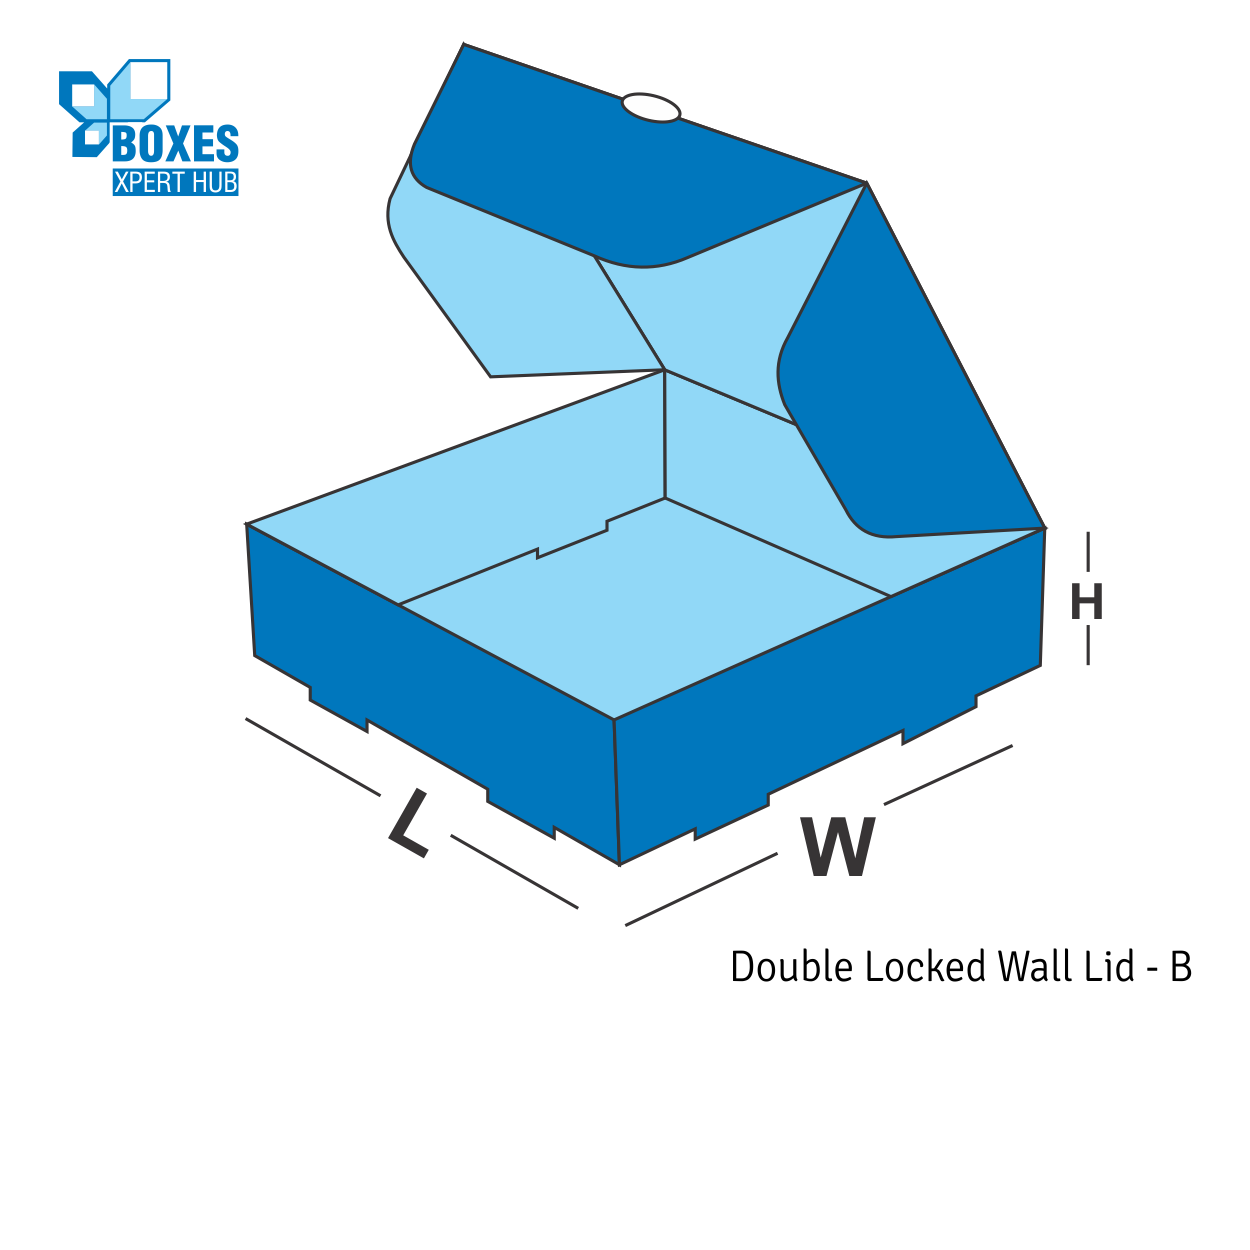 Double Locked Wall Lid